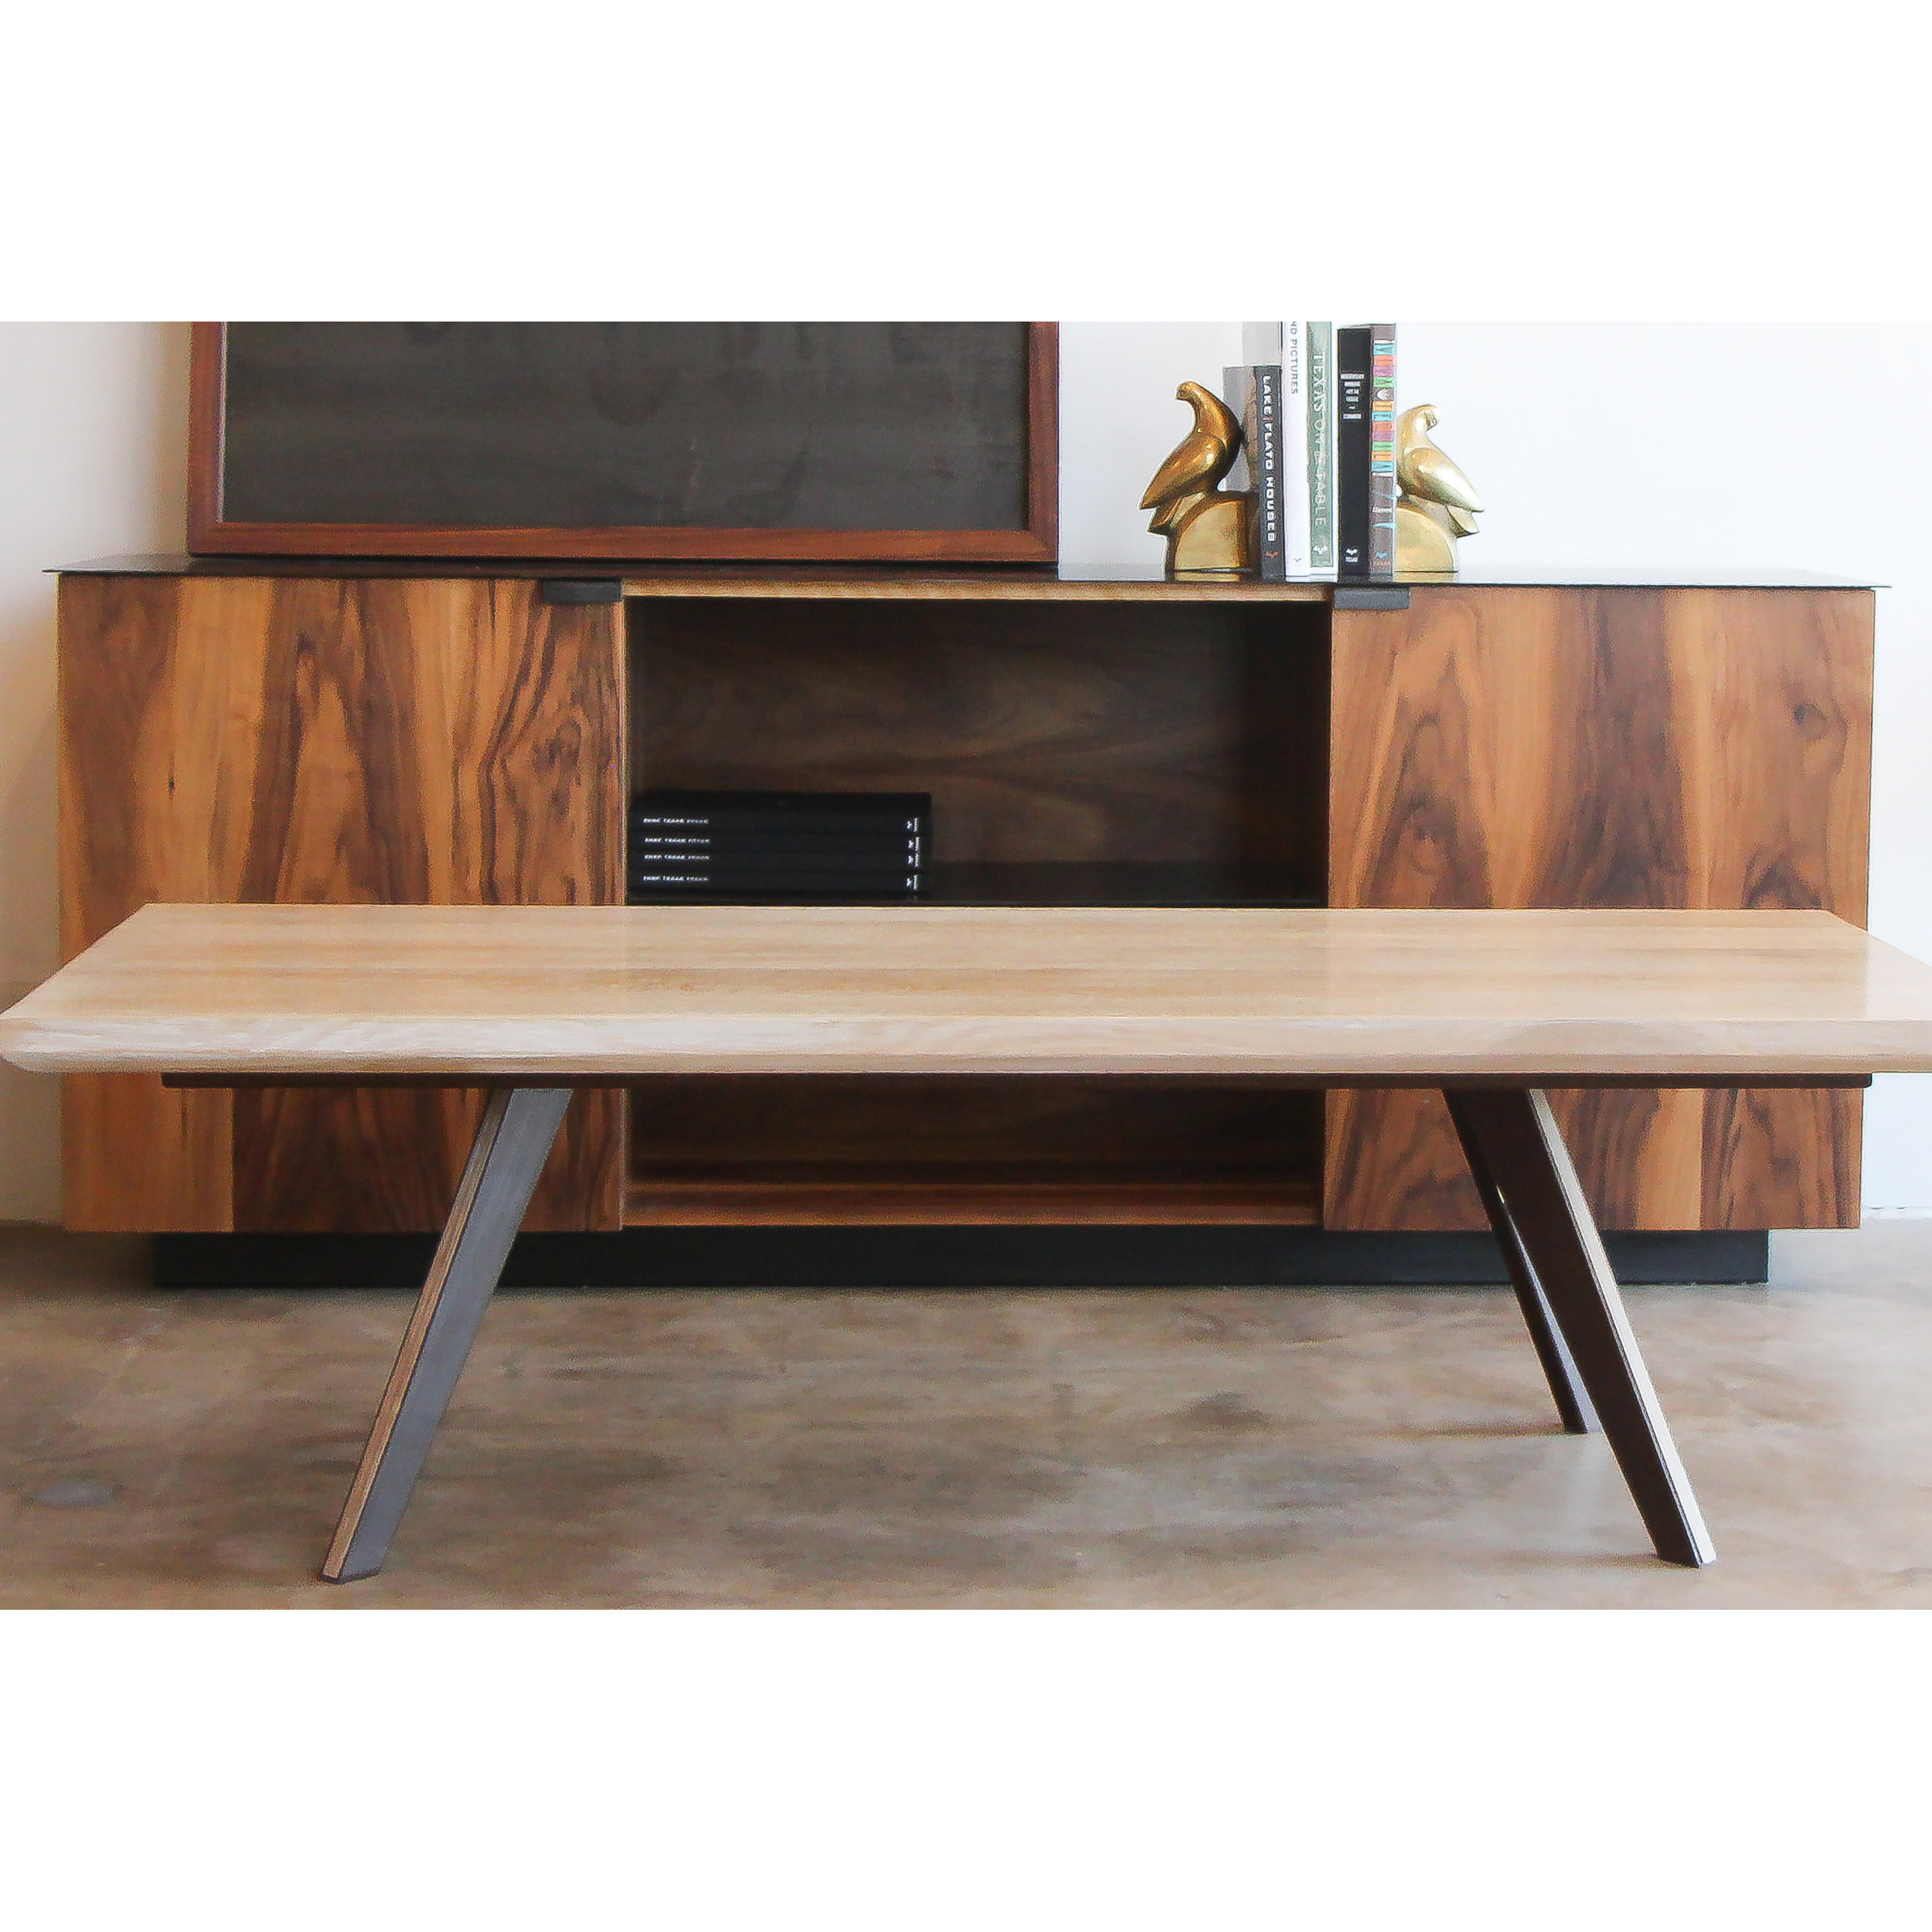 credenza_with_arrowtable.jpg